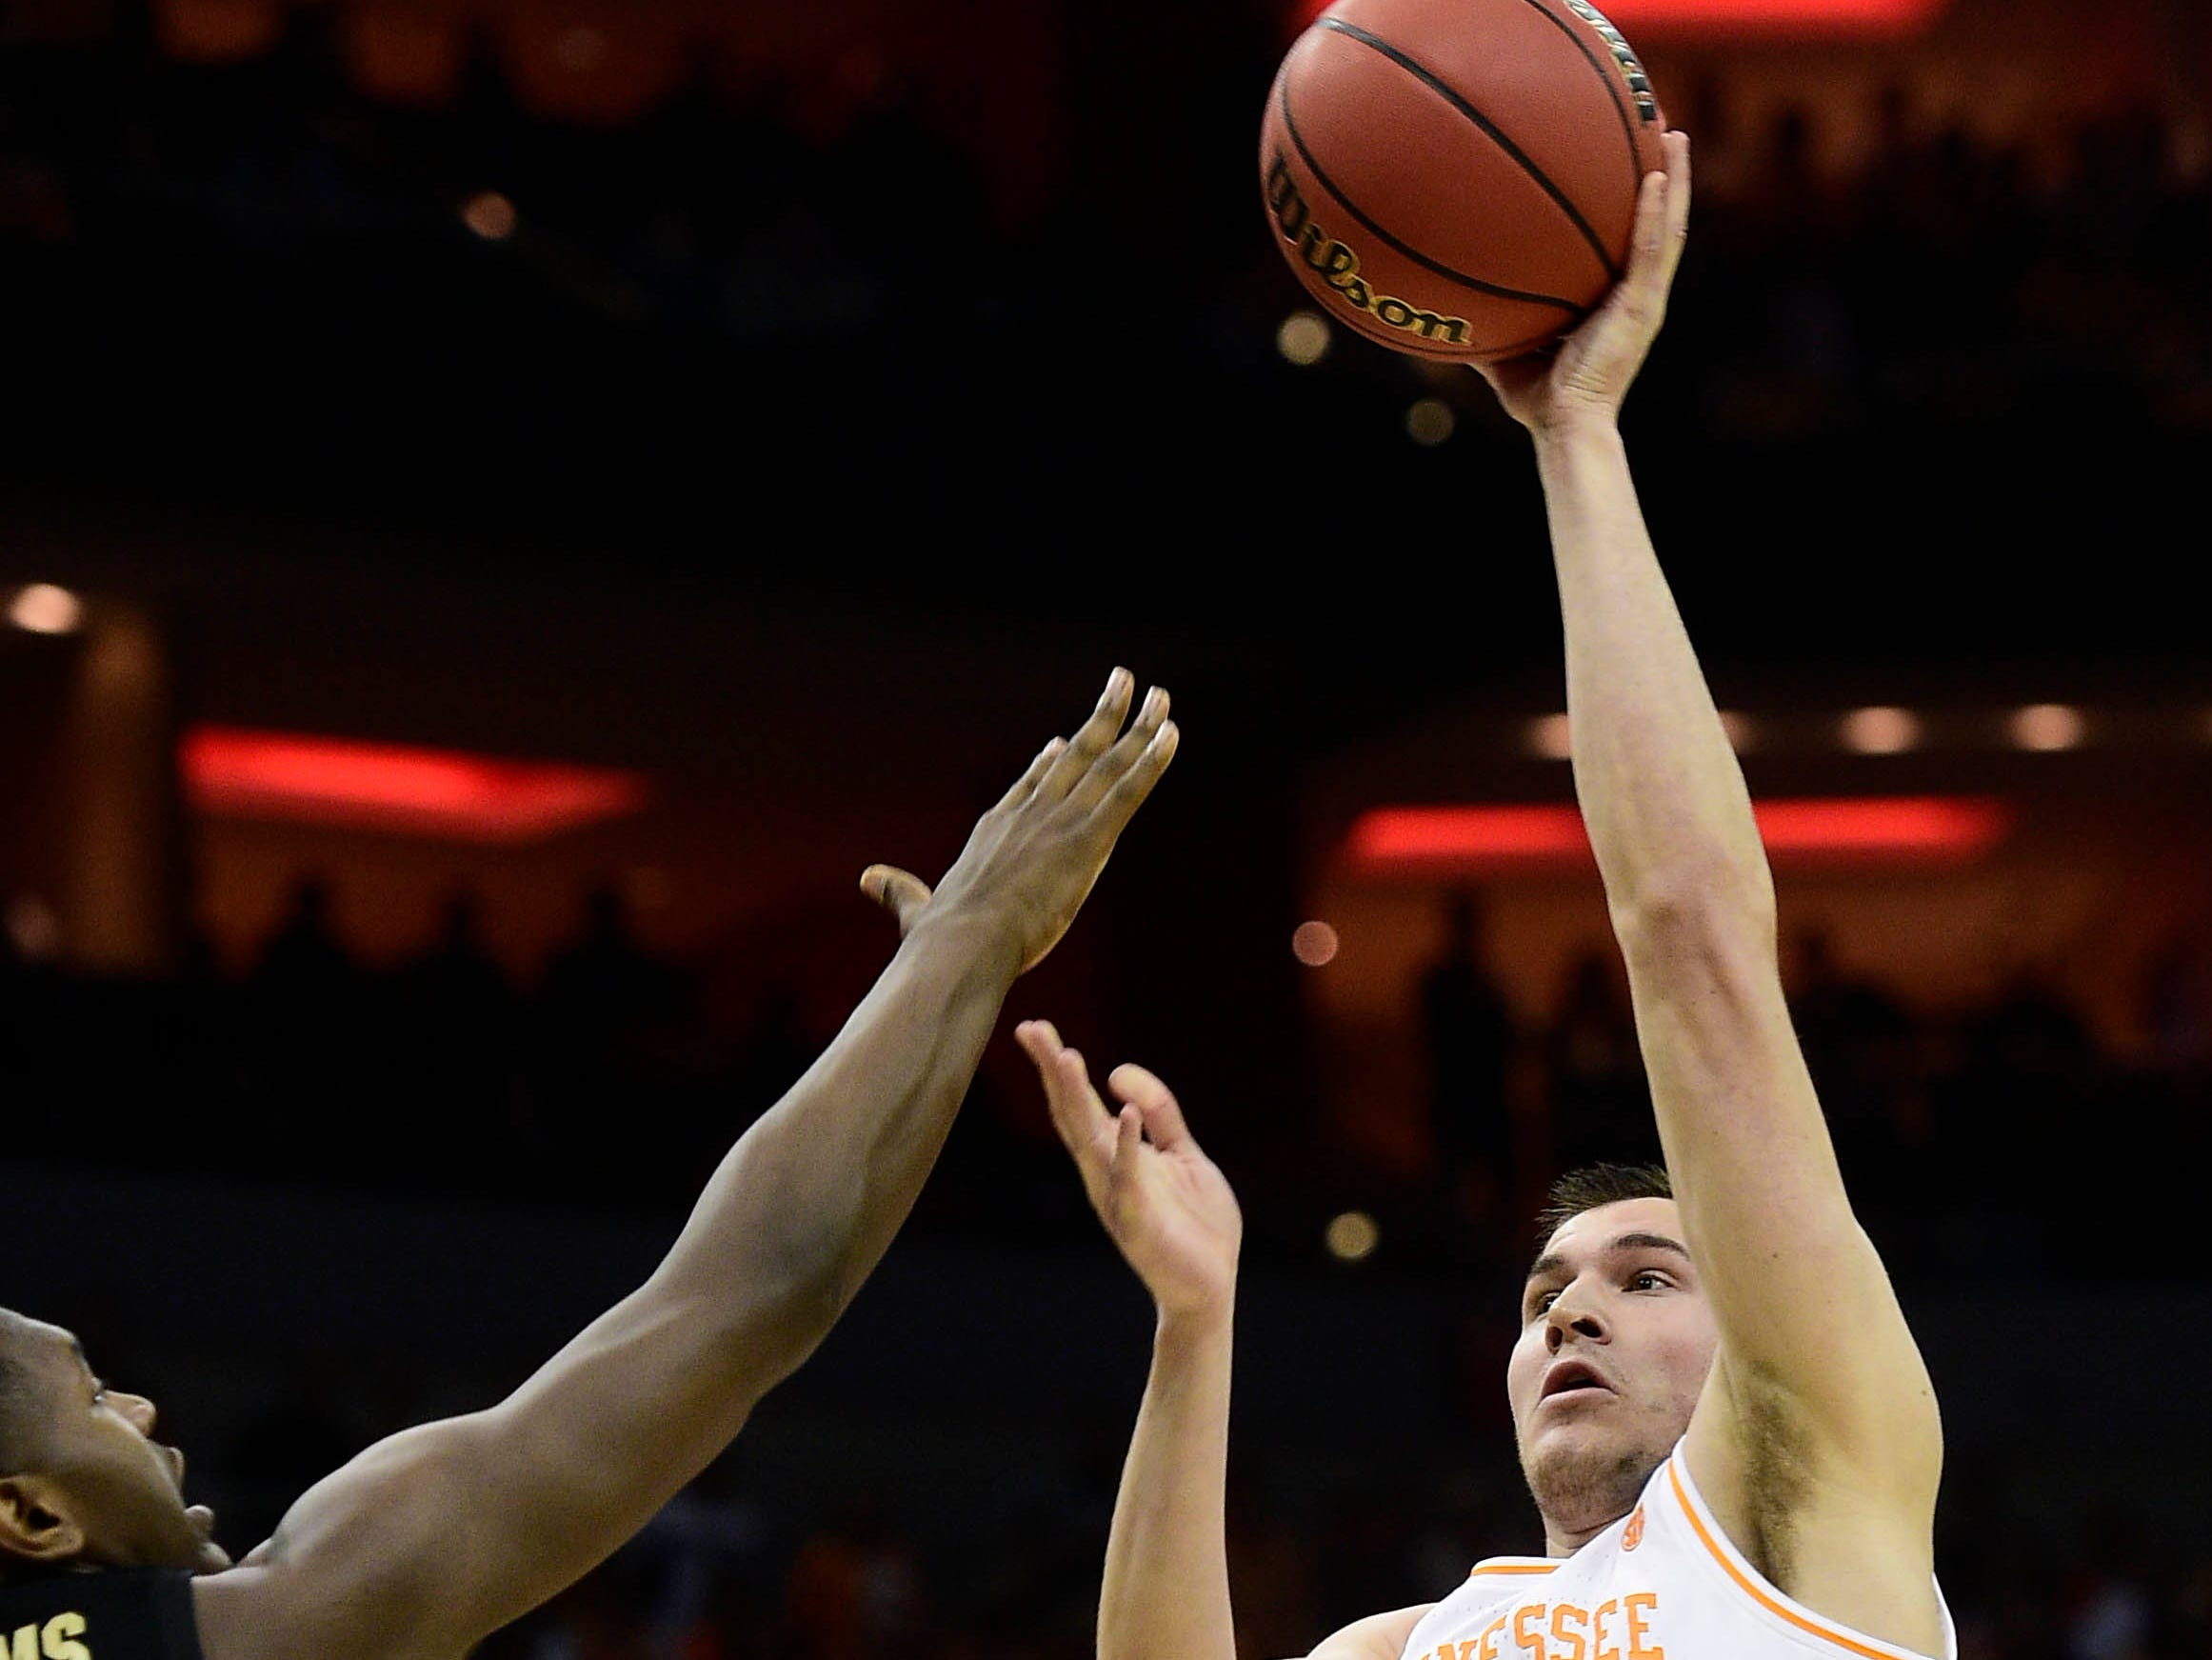 Mar 28, 2019; Louisville, KY, United States; Tennessee Volunteers forward John Fulkerson (10) shoots as Purdue Boilermakers forward Trevion Williams (50) defends during the first half in the semifinals of the south regional of the 2019 NCAA Tournament at KFC Yum Center. Mandatory Credit: Thomas J. Russo-USA TODAY Sports